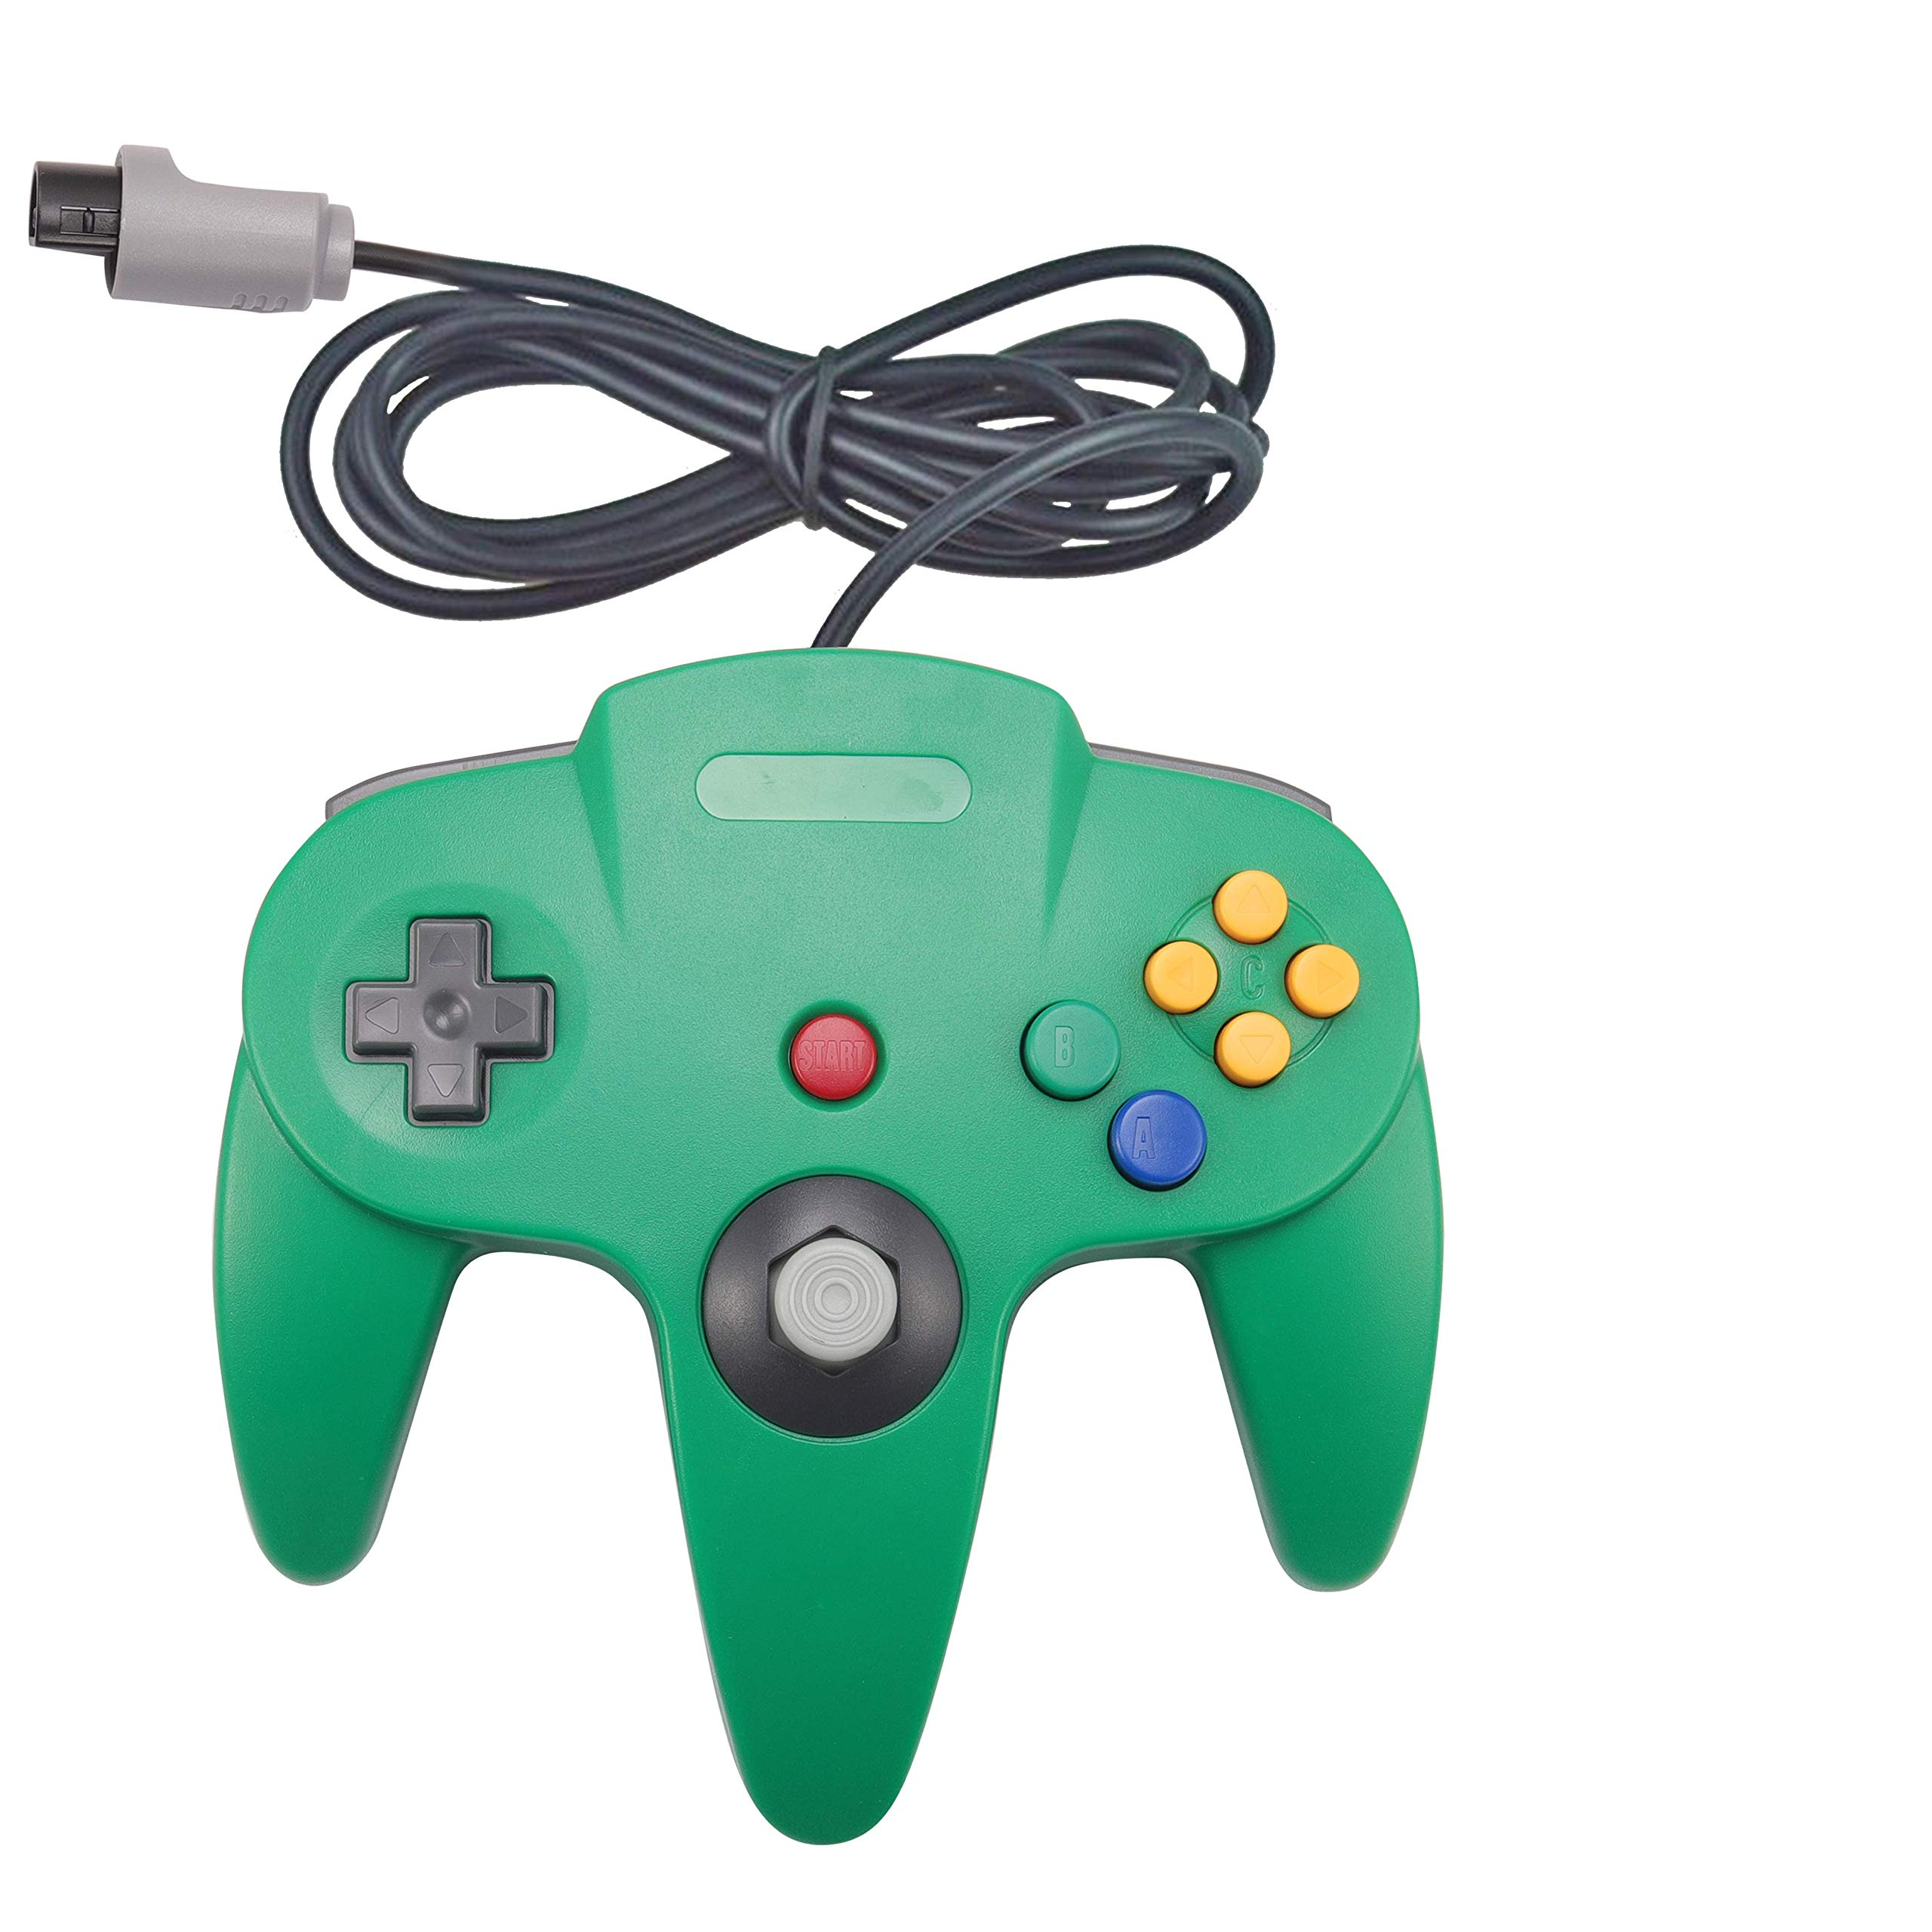 Joxde 1 Pack New Joystick Classic Wired Controller for N64 Gamepad Console (Green)